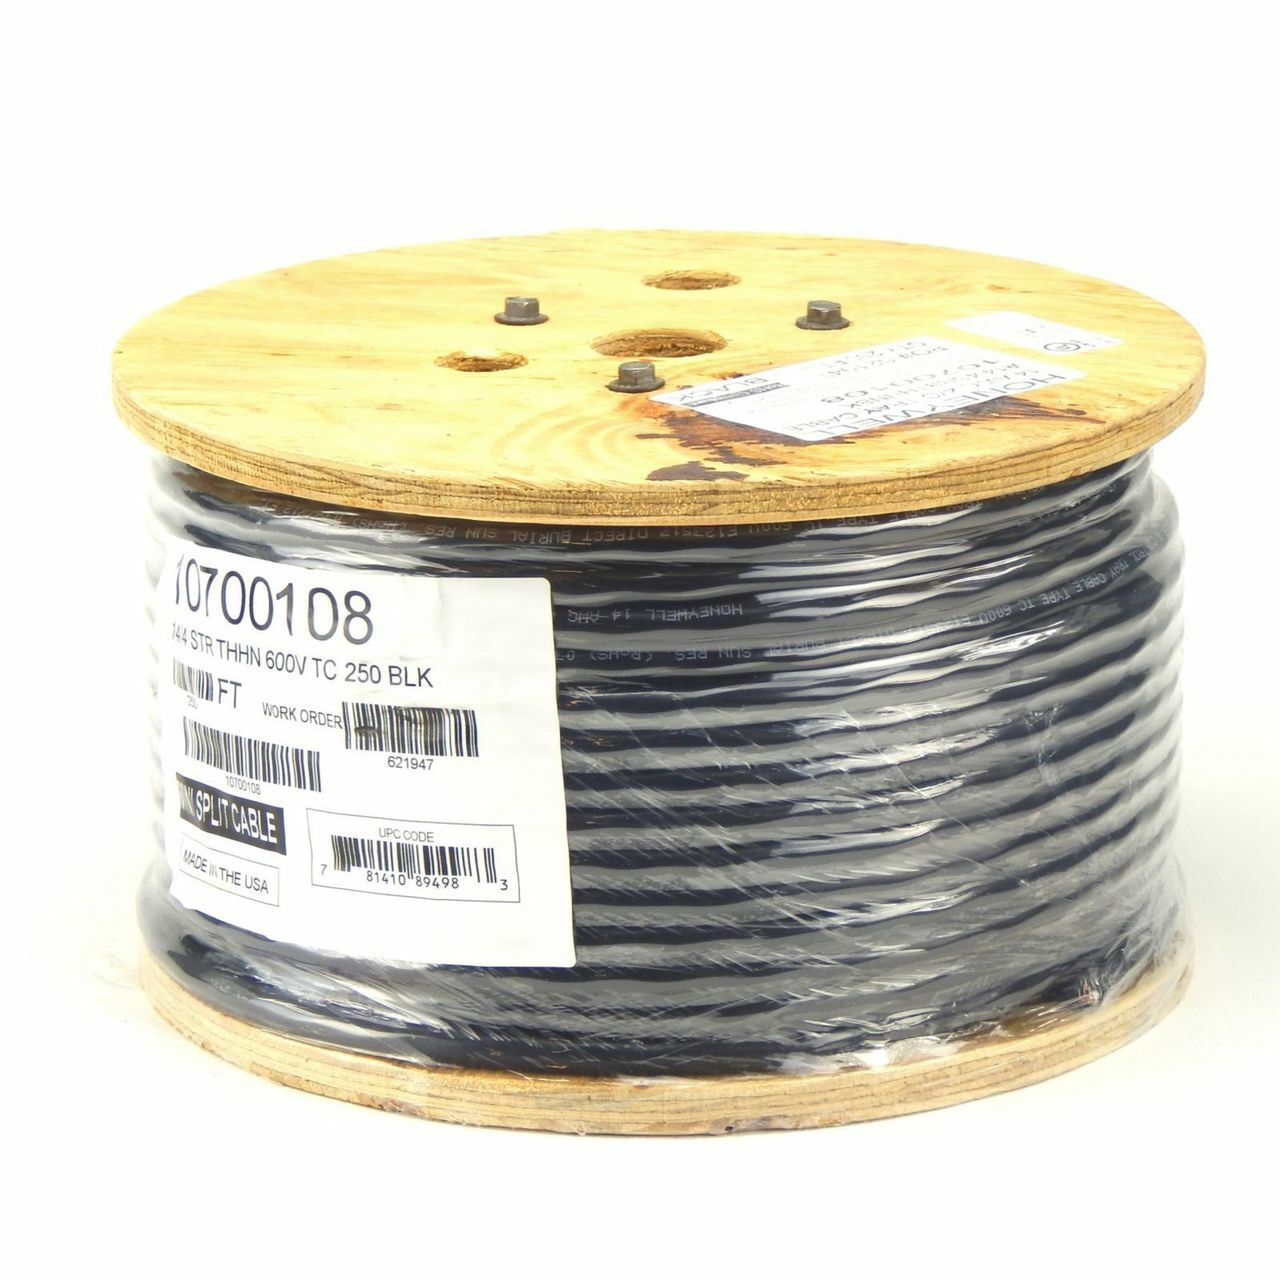 Honeywell Mini Split Cable 250 ft 14 AWG 4 Conductor Wire THHN